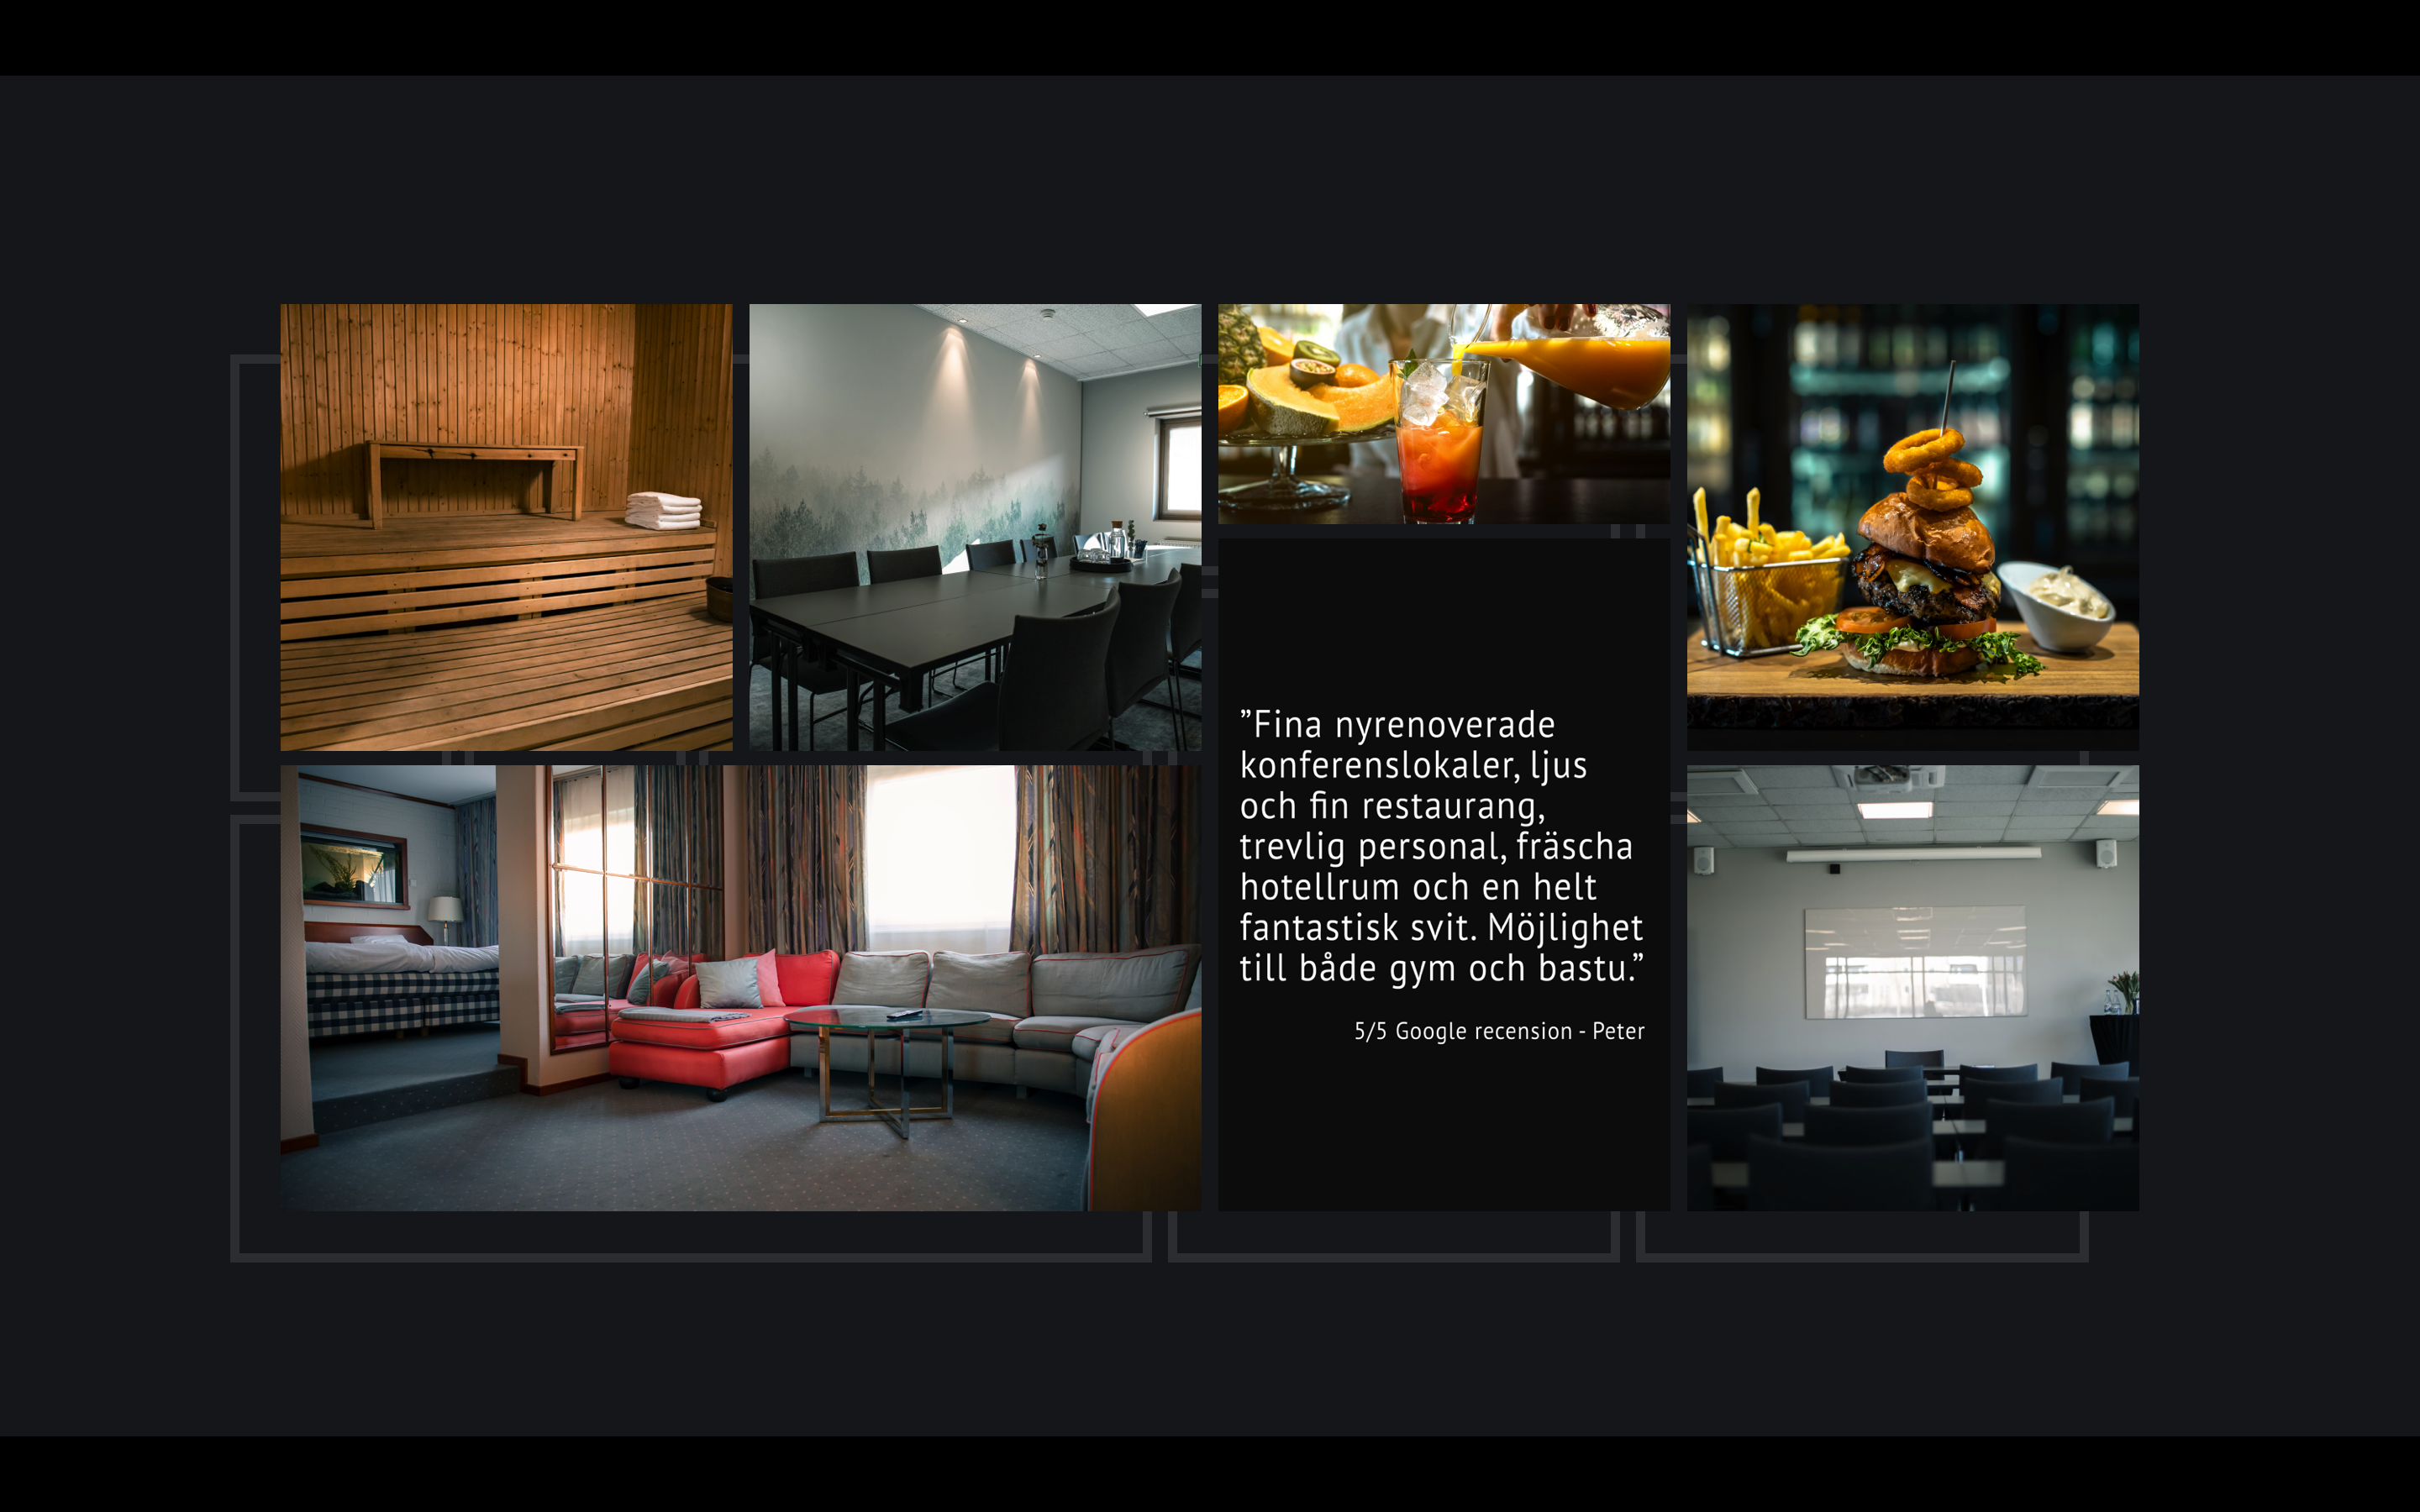 A collage of detail pictures taken at Hotel Scheele featuring their sauna, conference rooms, a fruity drink, a juice burger with bacon, their premium suit and a positive quote from a customer.